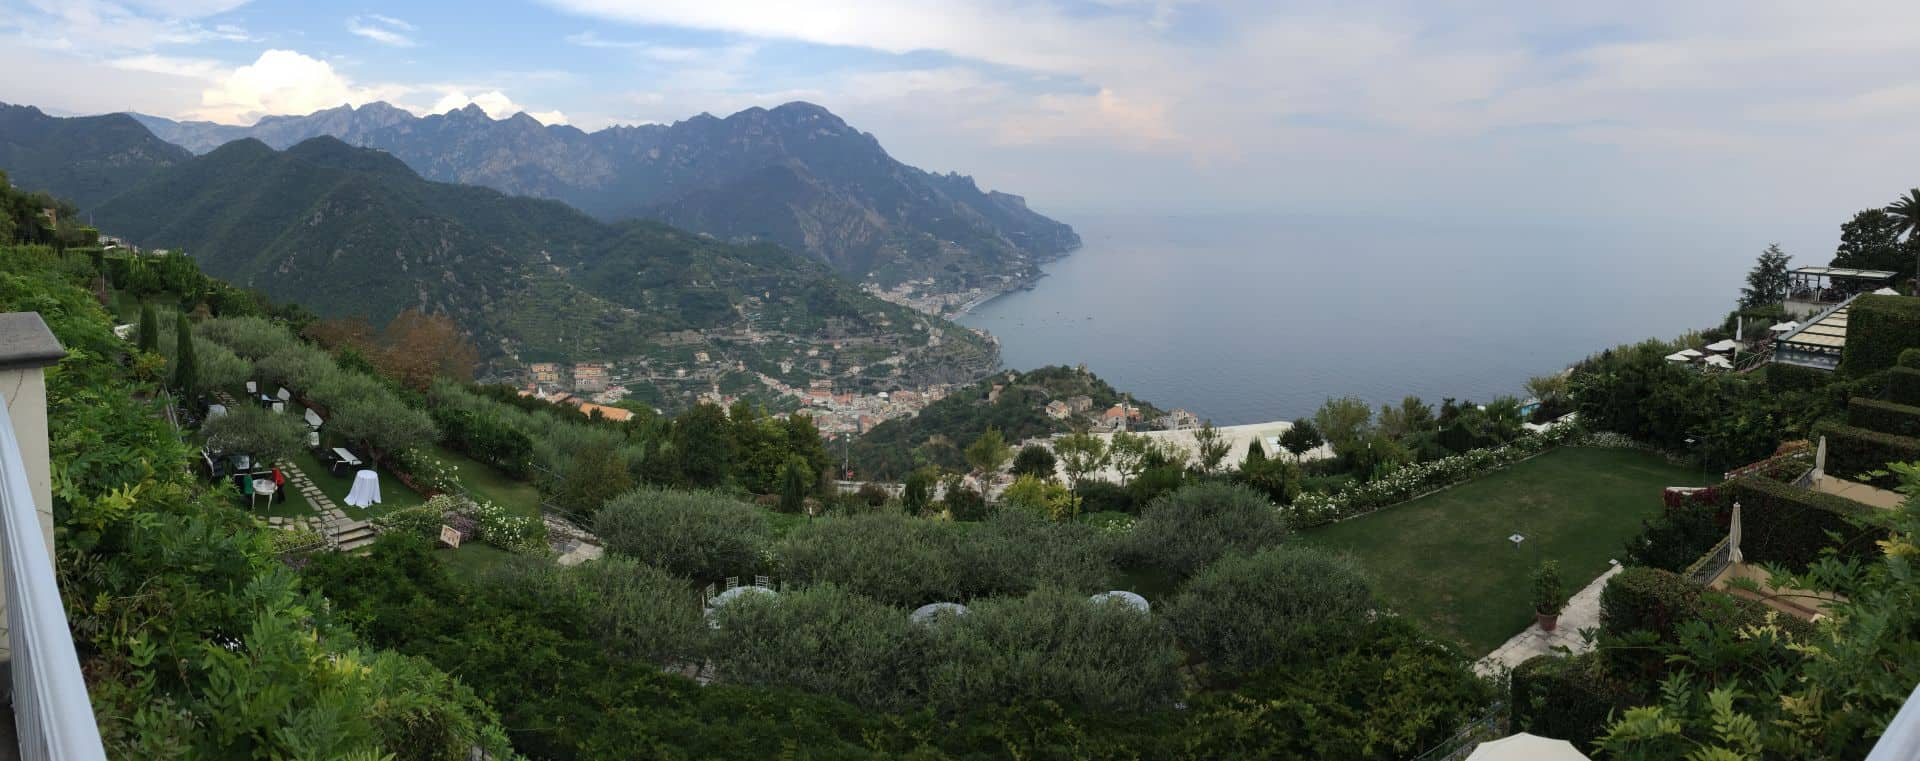 Belmond Hotel Caruso Views